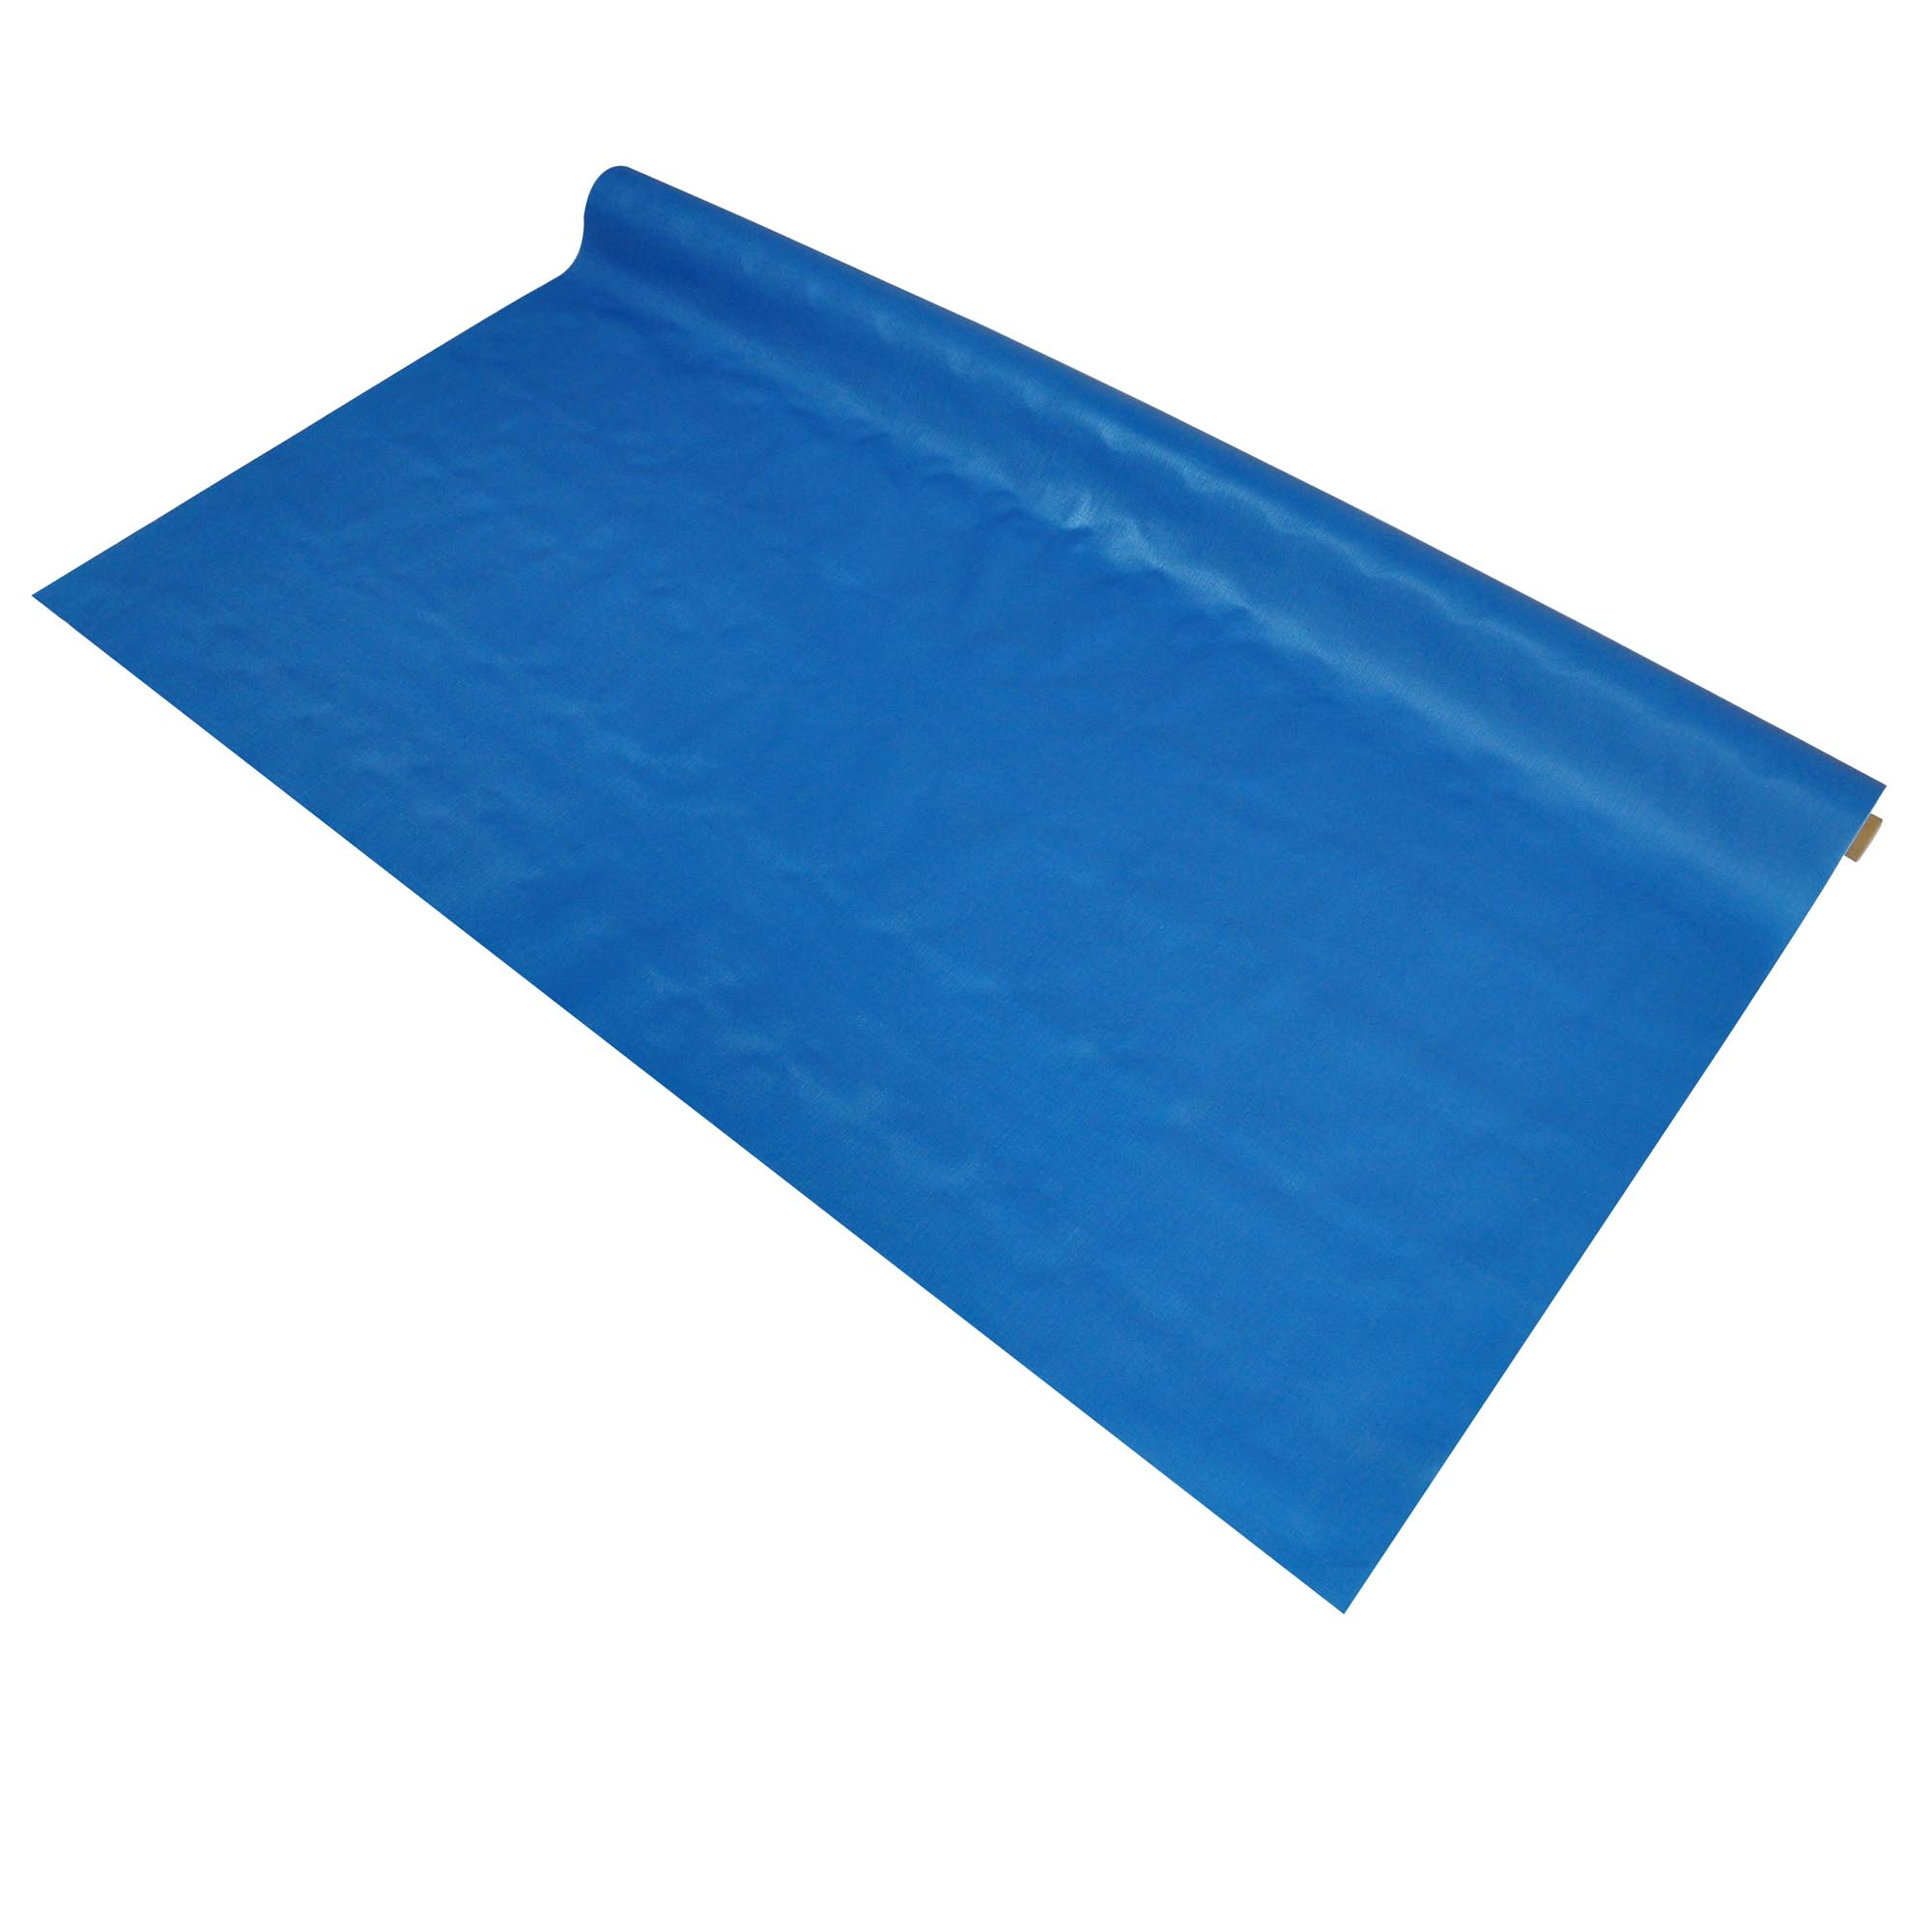 Solid color pvc tablecloth in roll